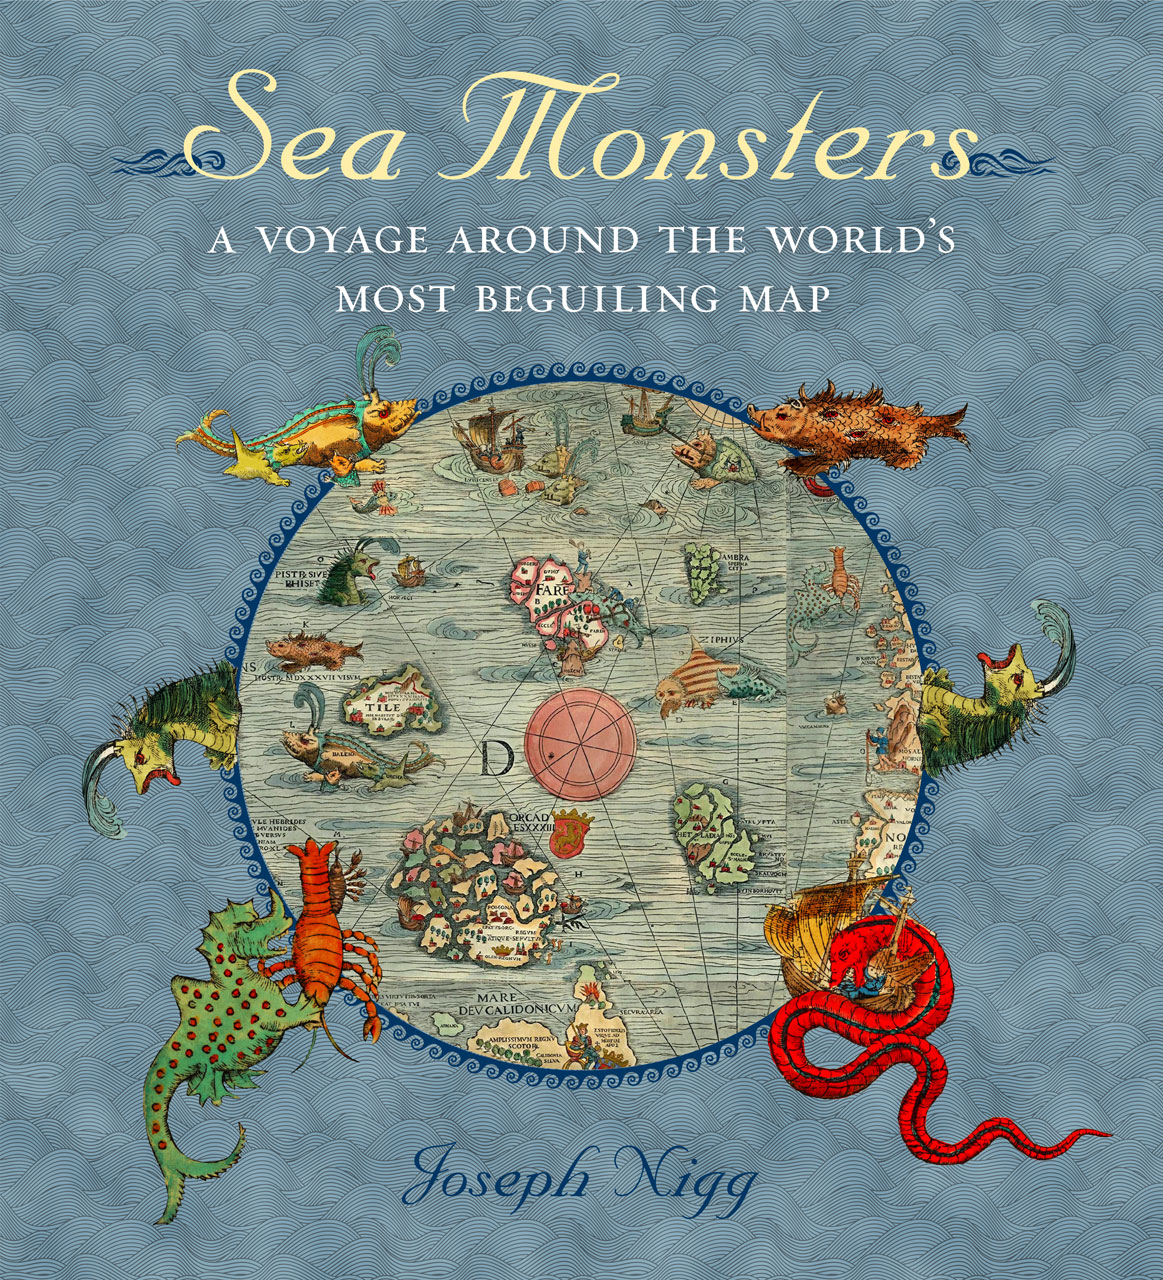 Sea monsters a voyage around the worlds most beguiling map nigg addthis sharing buttons gumiabroncs Images